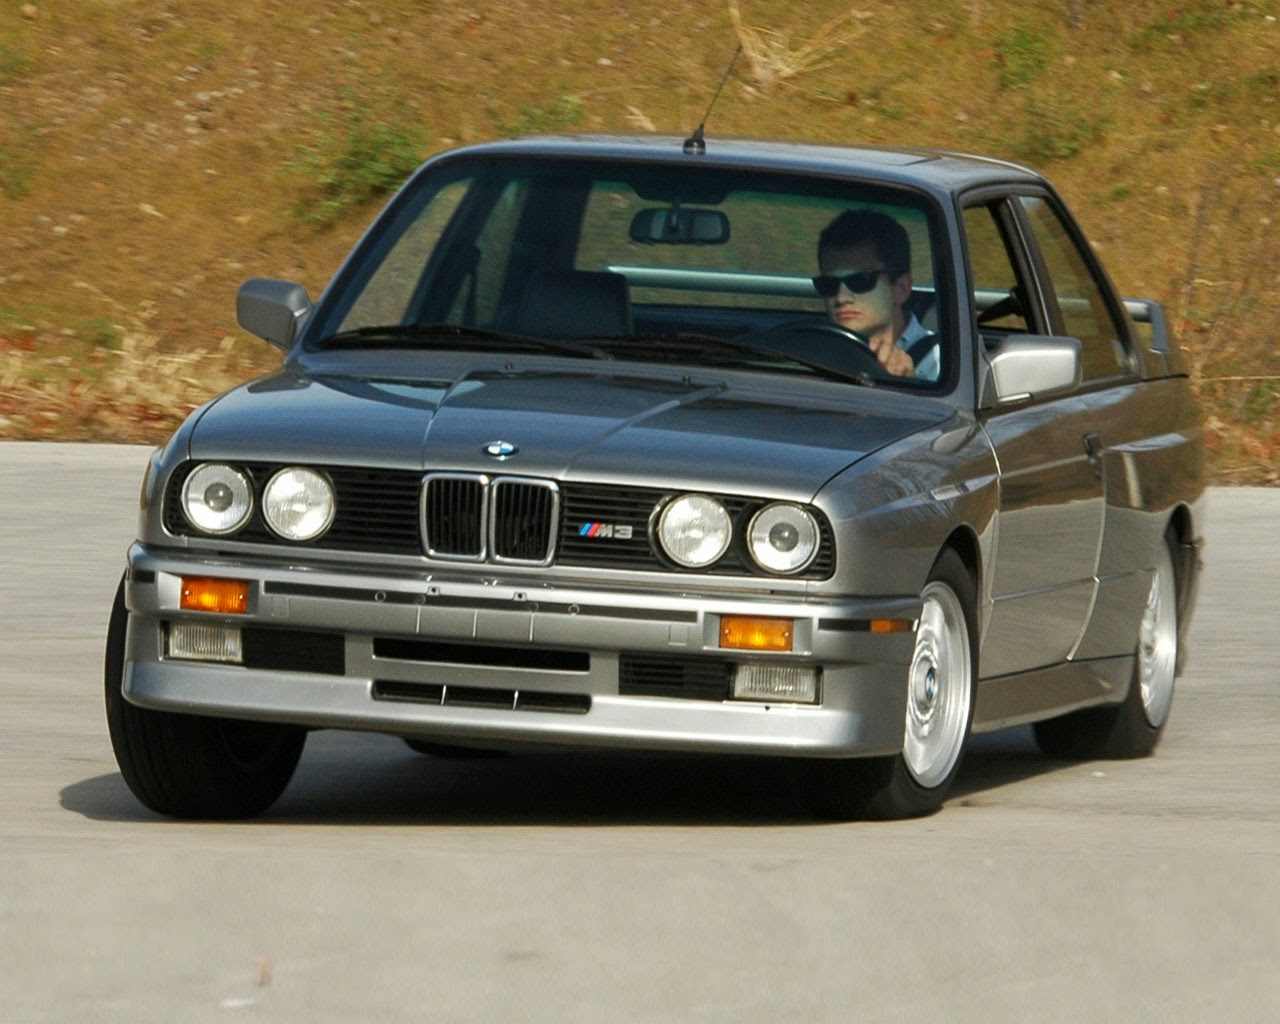 BMW e30 Review: 1987 BMW E30 M3